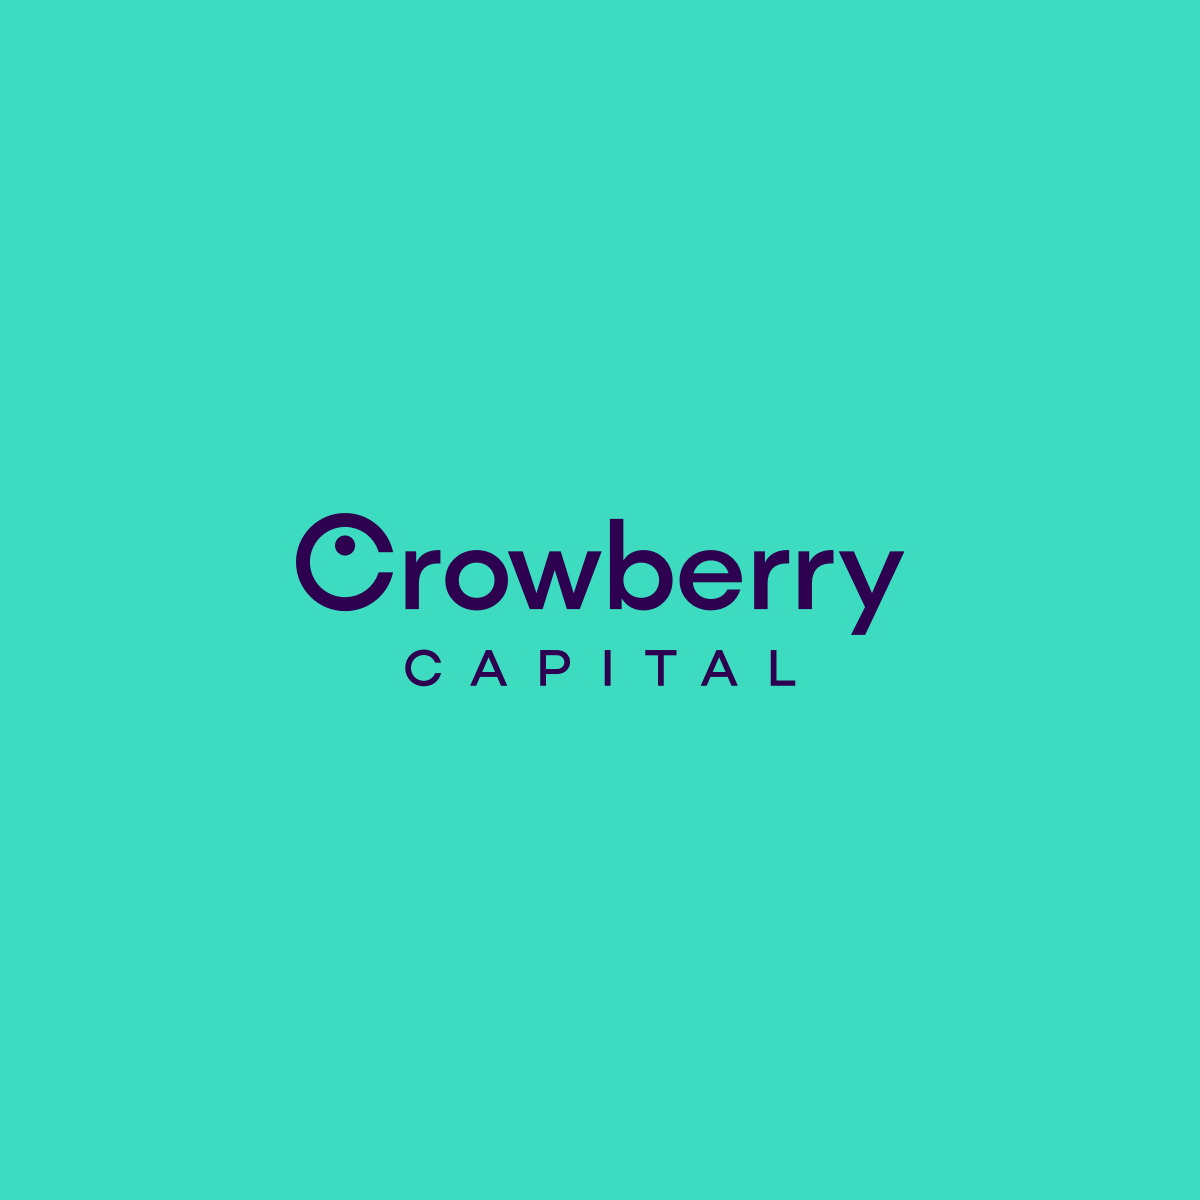 Crowberry Capital